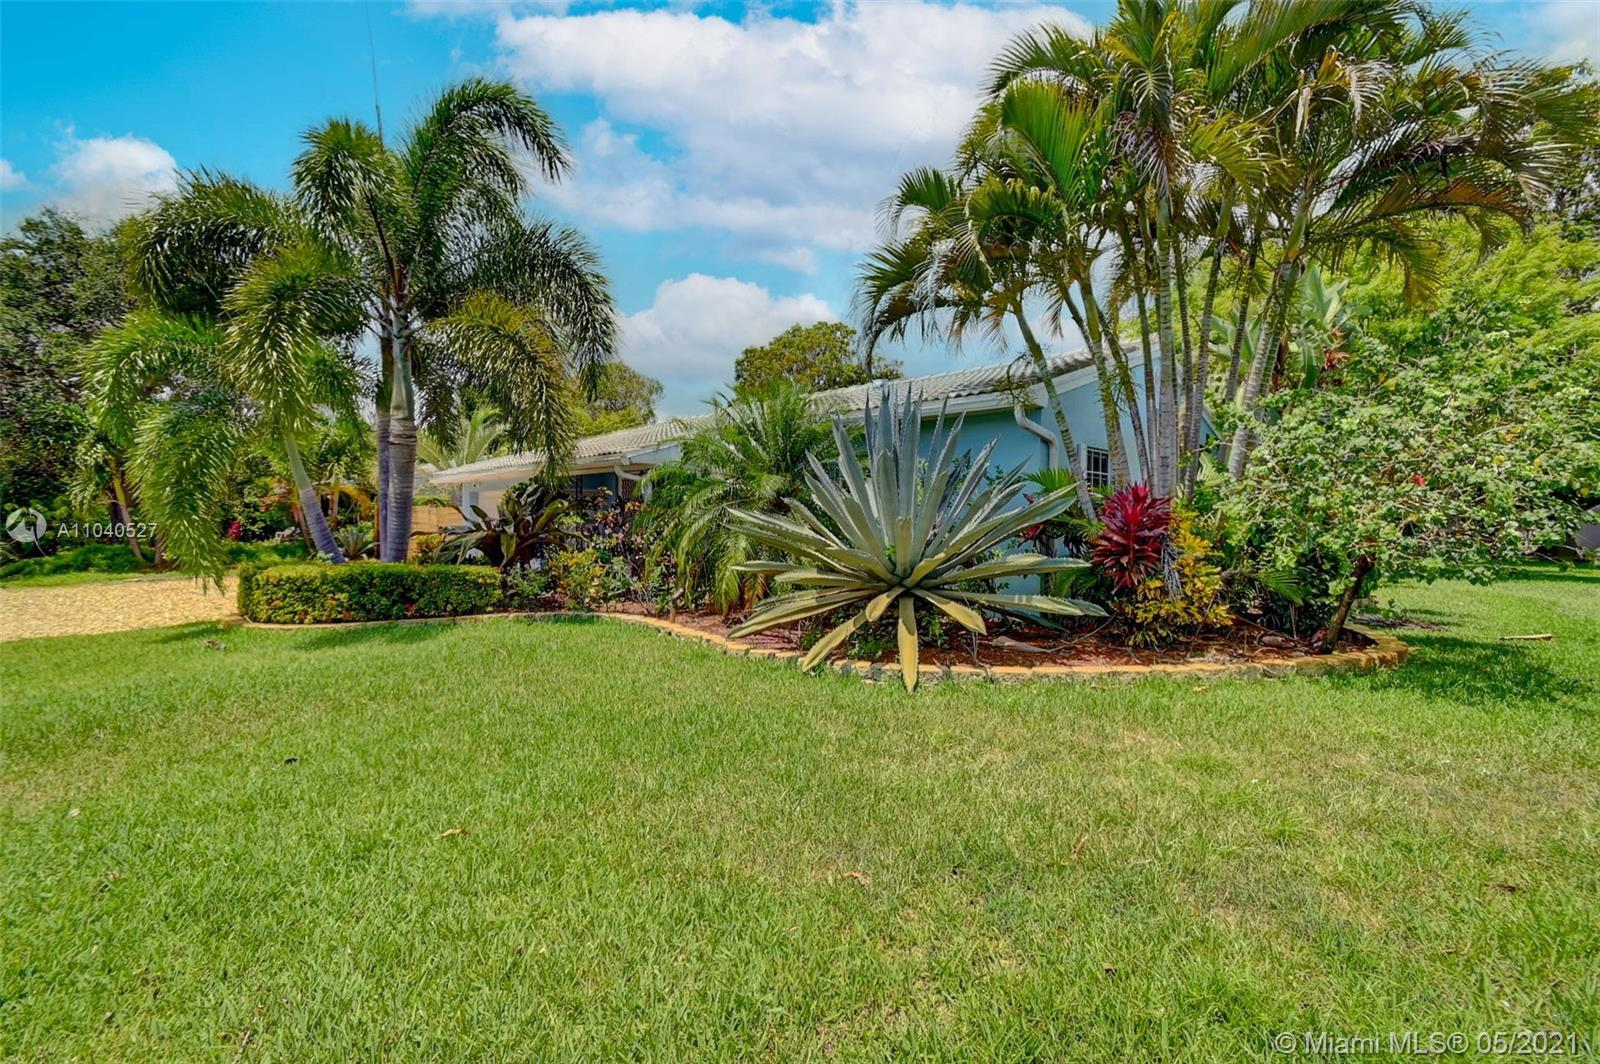 Beautifully remodeled home just minutes from the beach ! Polished Terrazzo floors throughout, brand